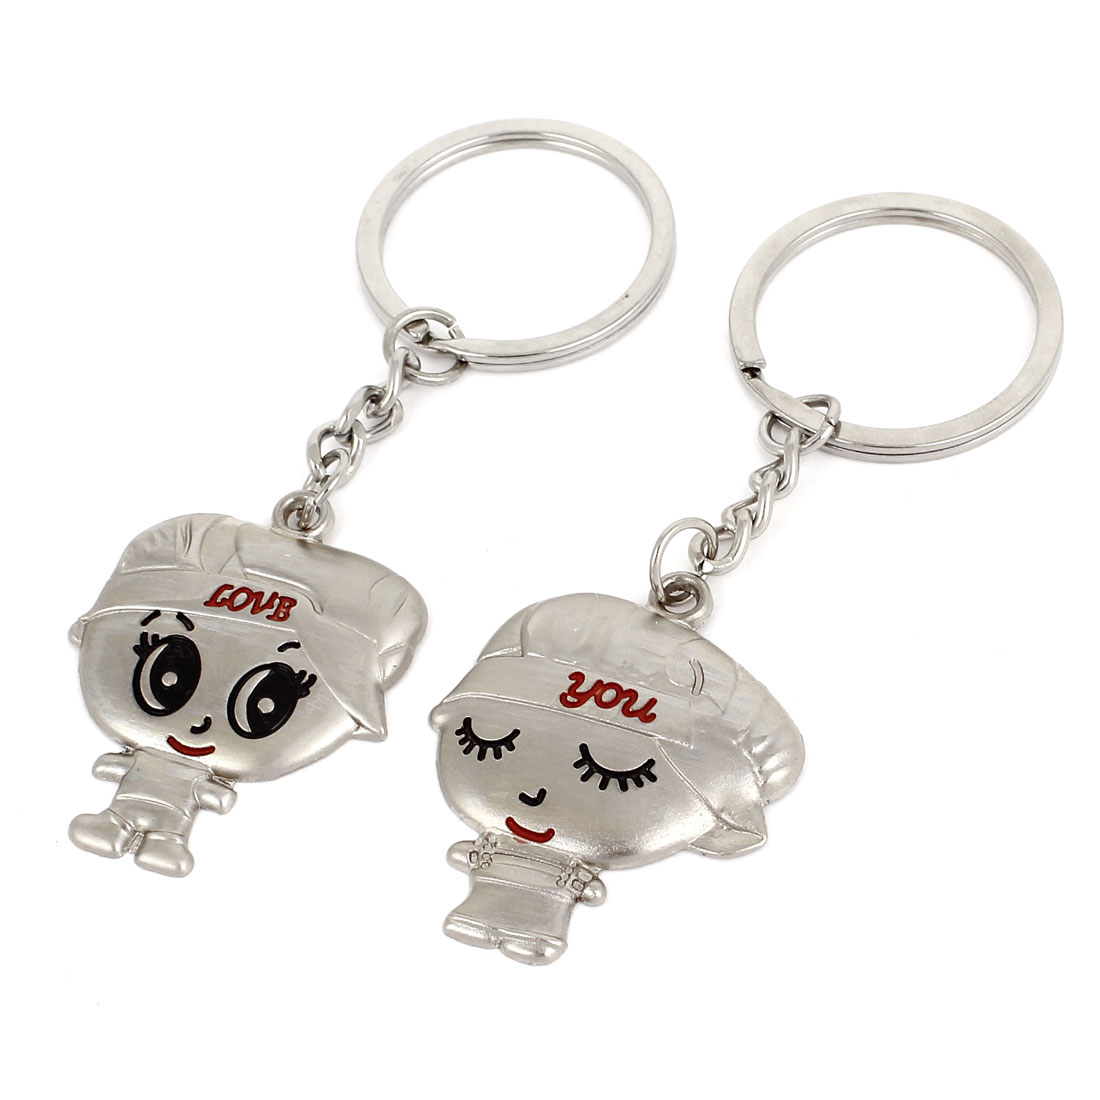 Pair Shape Pendant Couples Lover Keyrings Keychains Silver Tone